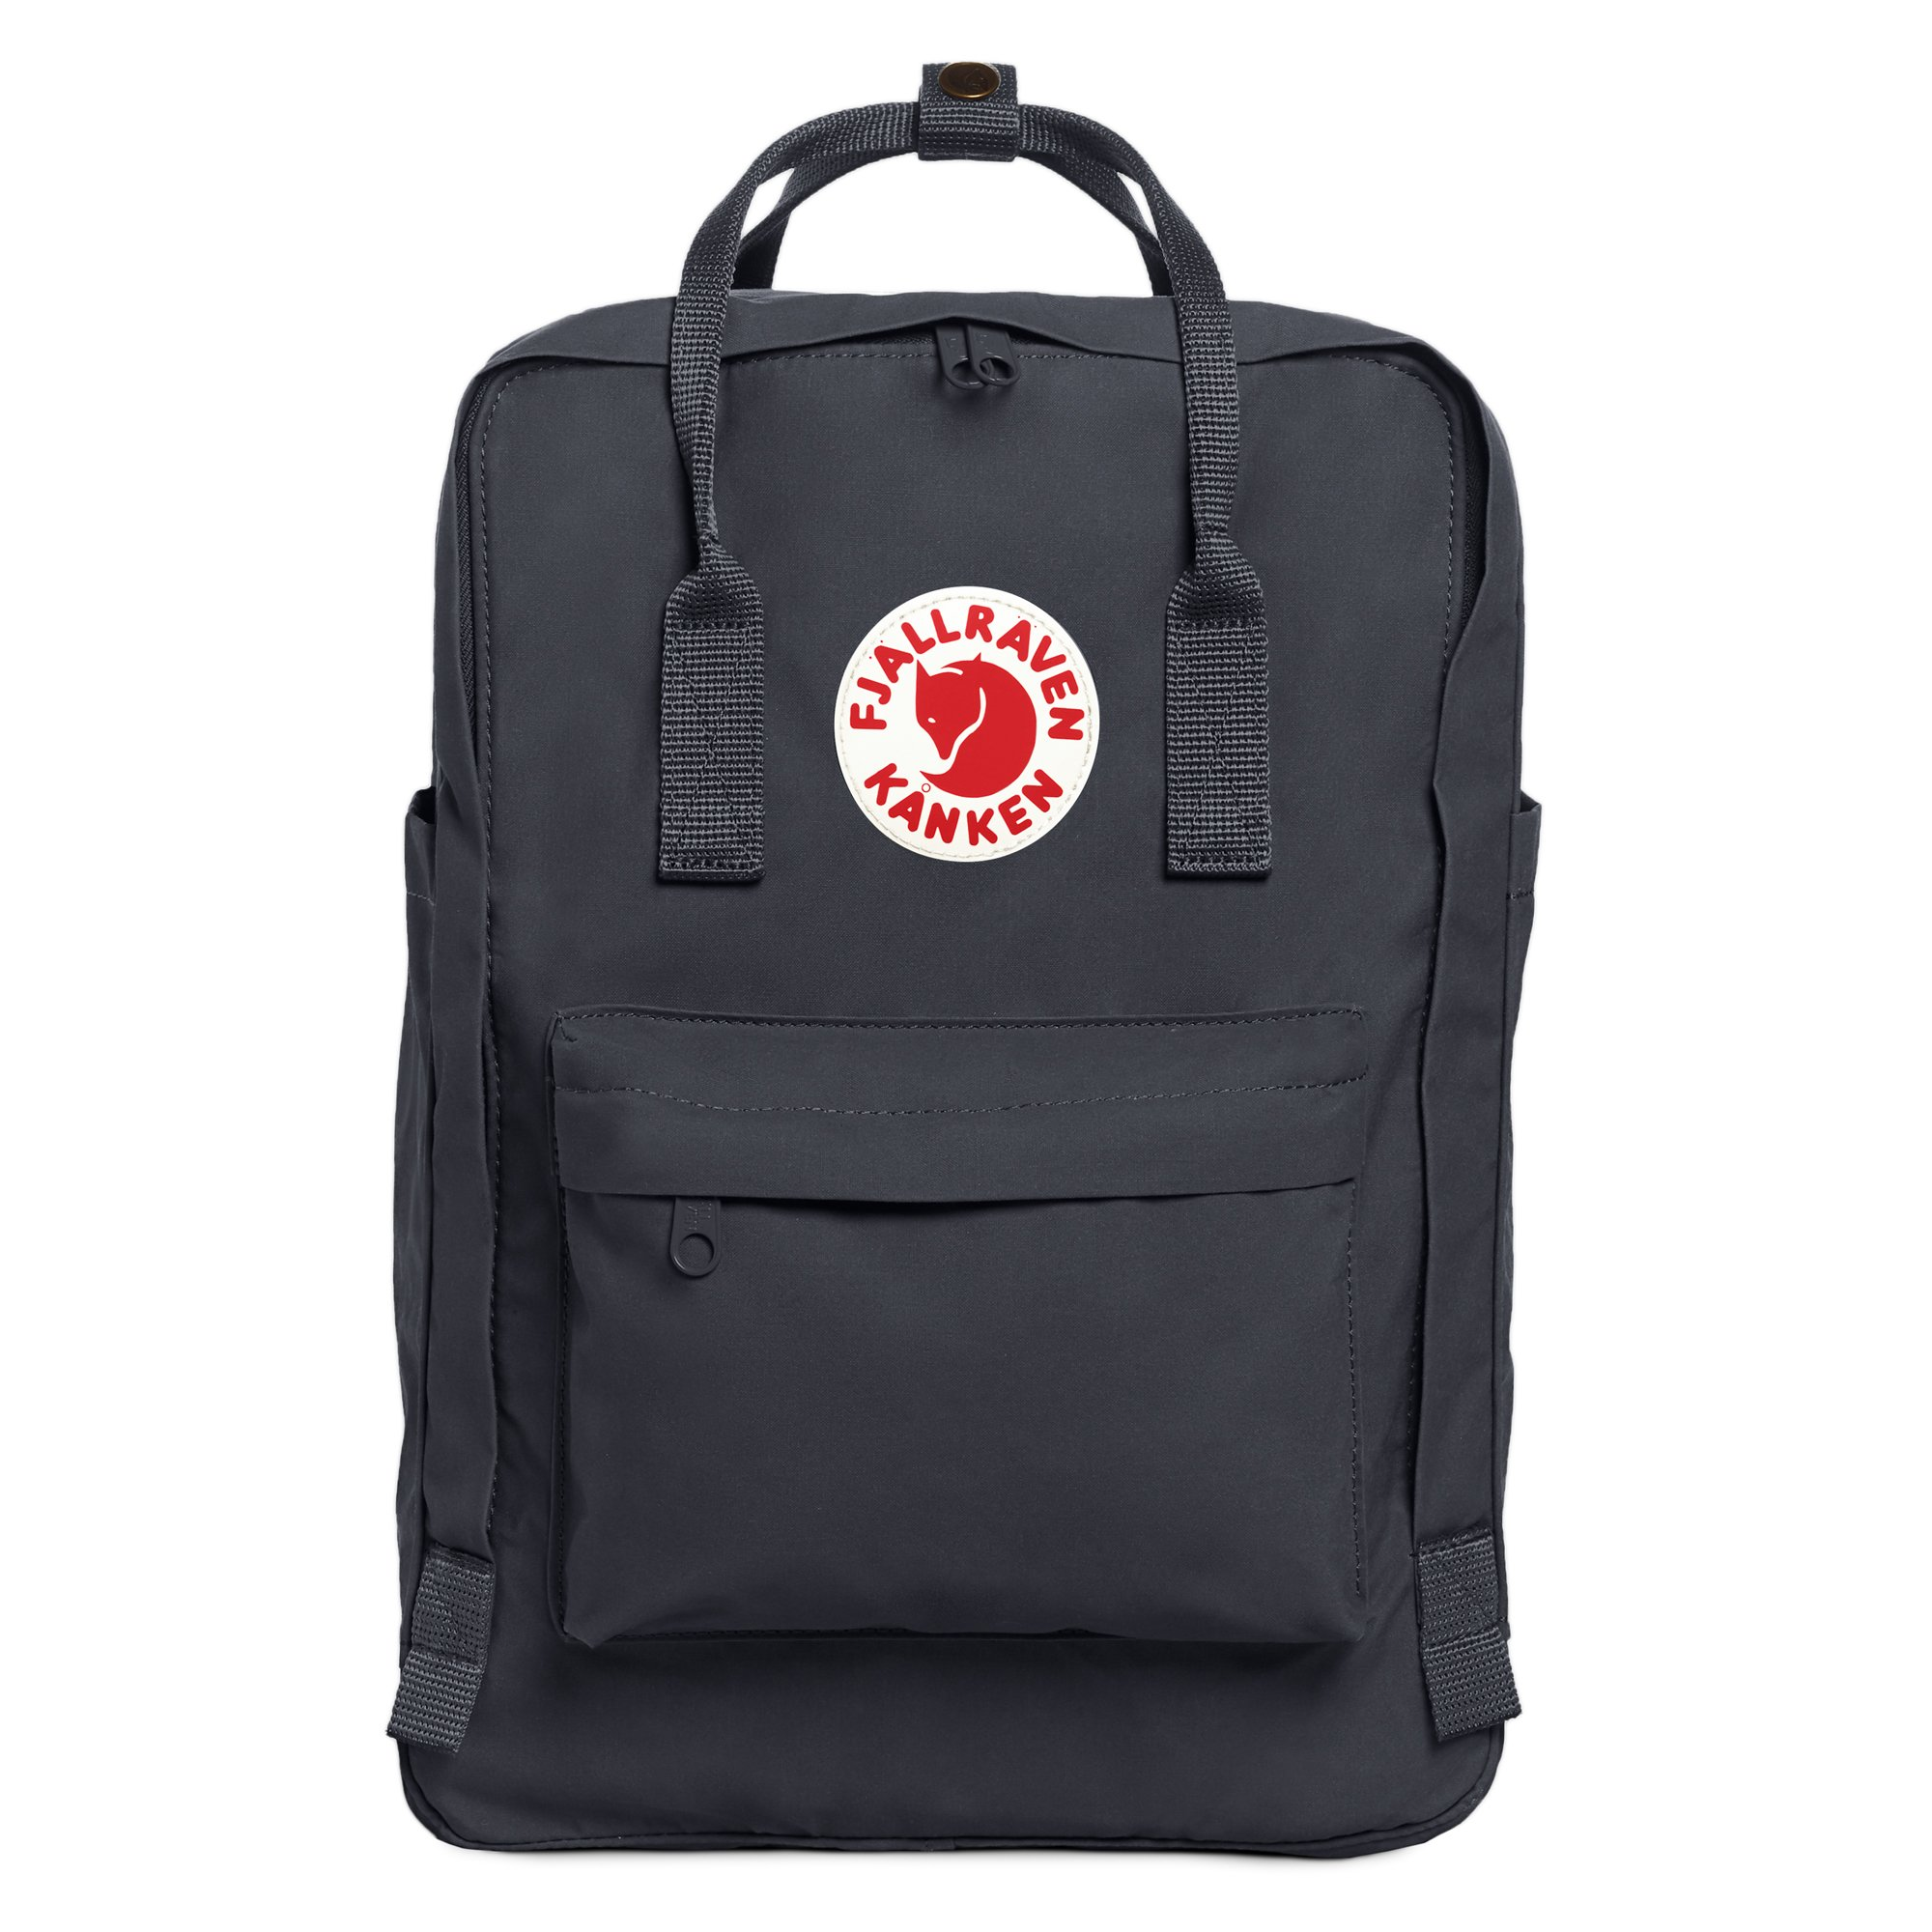 414994cff649 Fjallraven Kanken Laptop Backpack